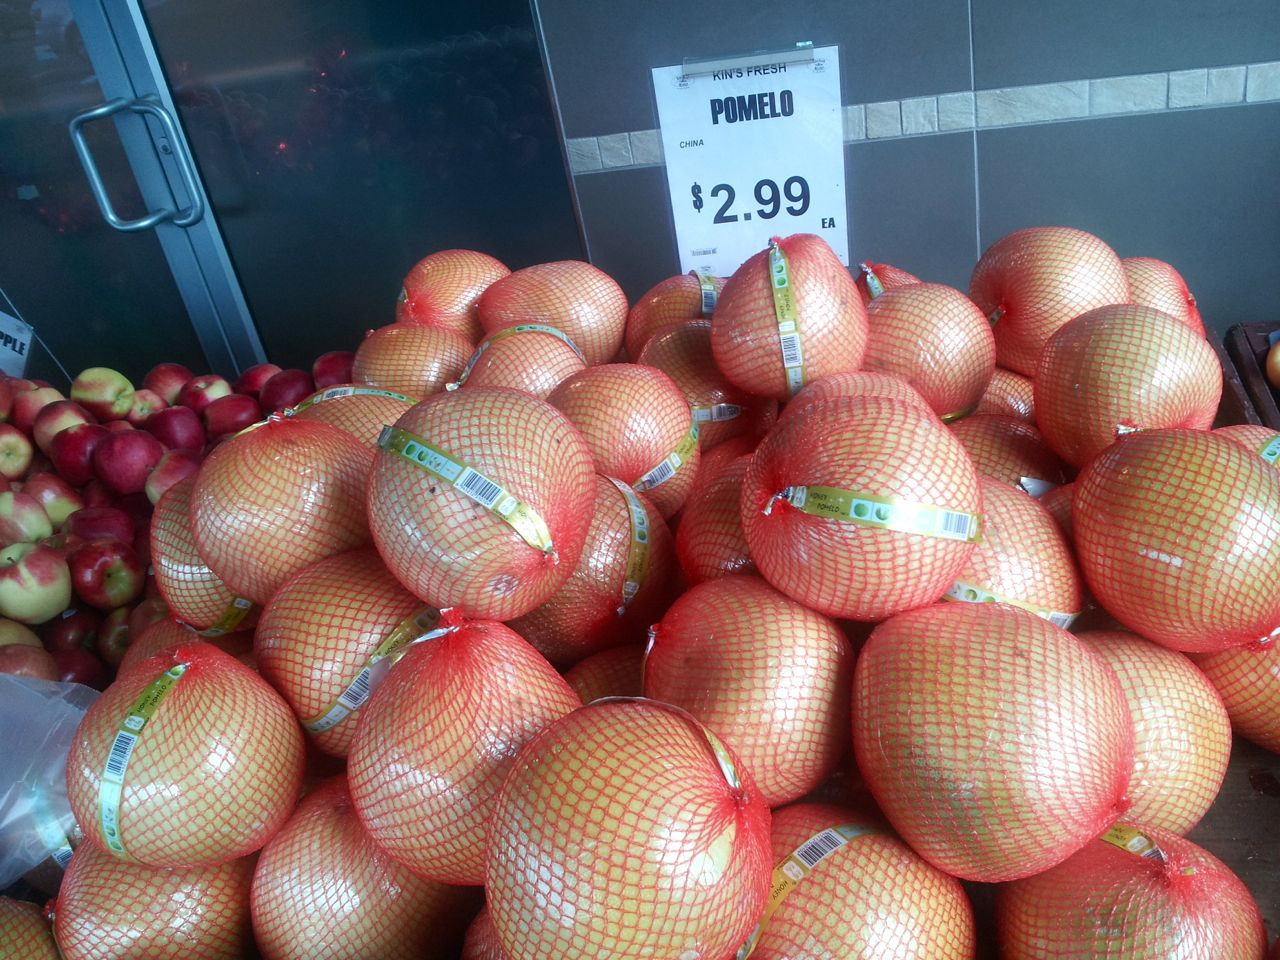 Pomelos at Kin's Farm Market